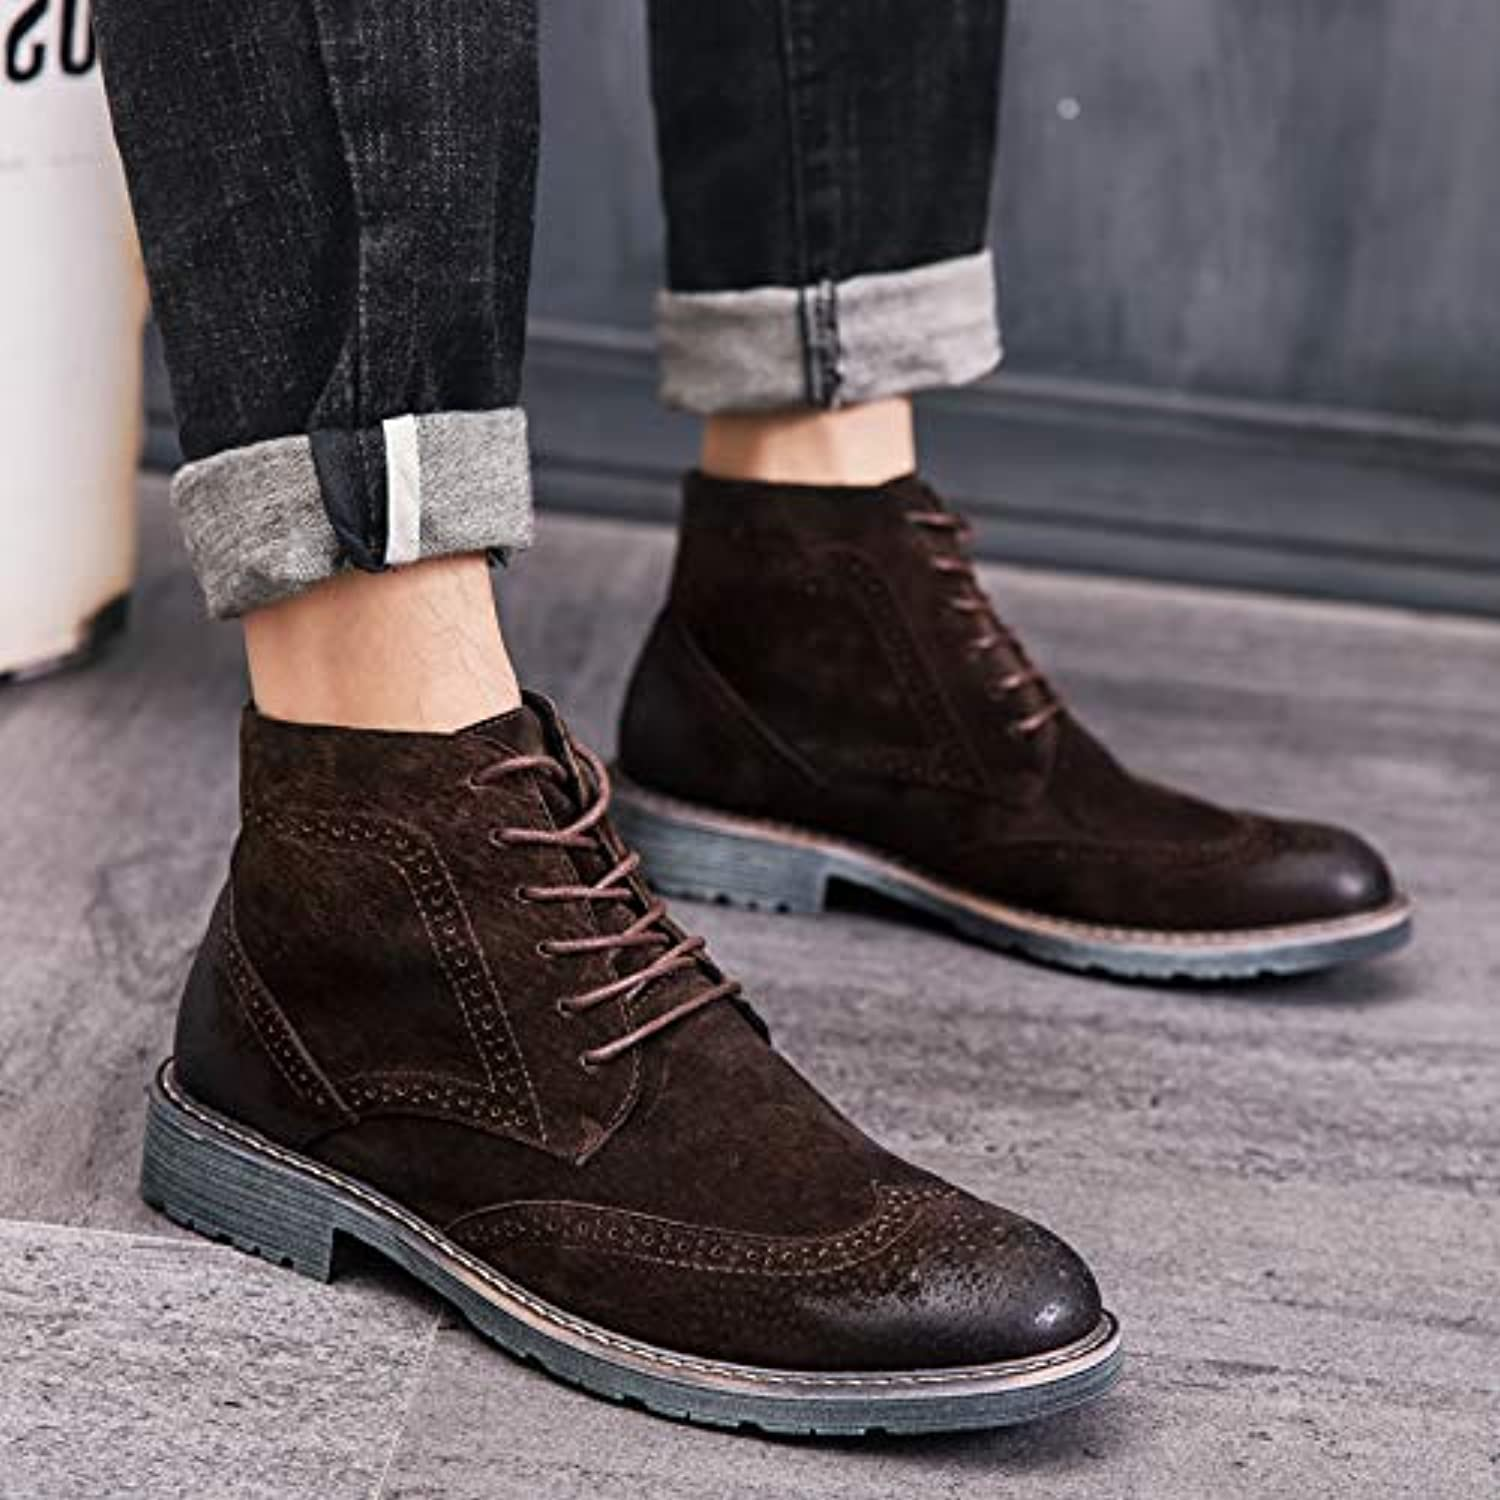 ZyuQ Ankle boots In The Martin Boots Men'S Boots High shoes Men'S High Help Scrub High Tube Winter